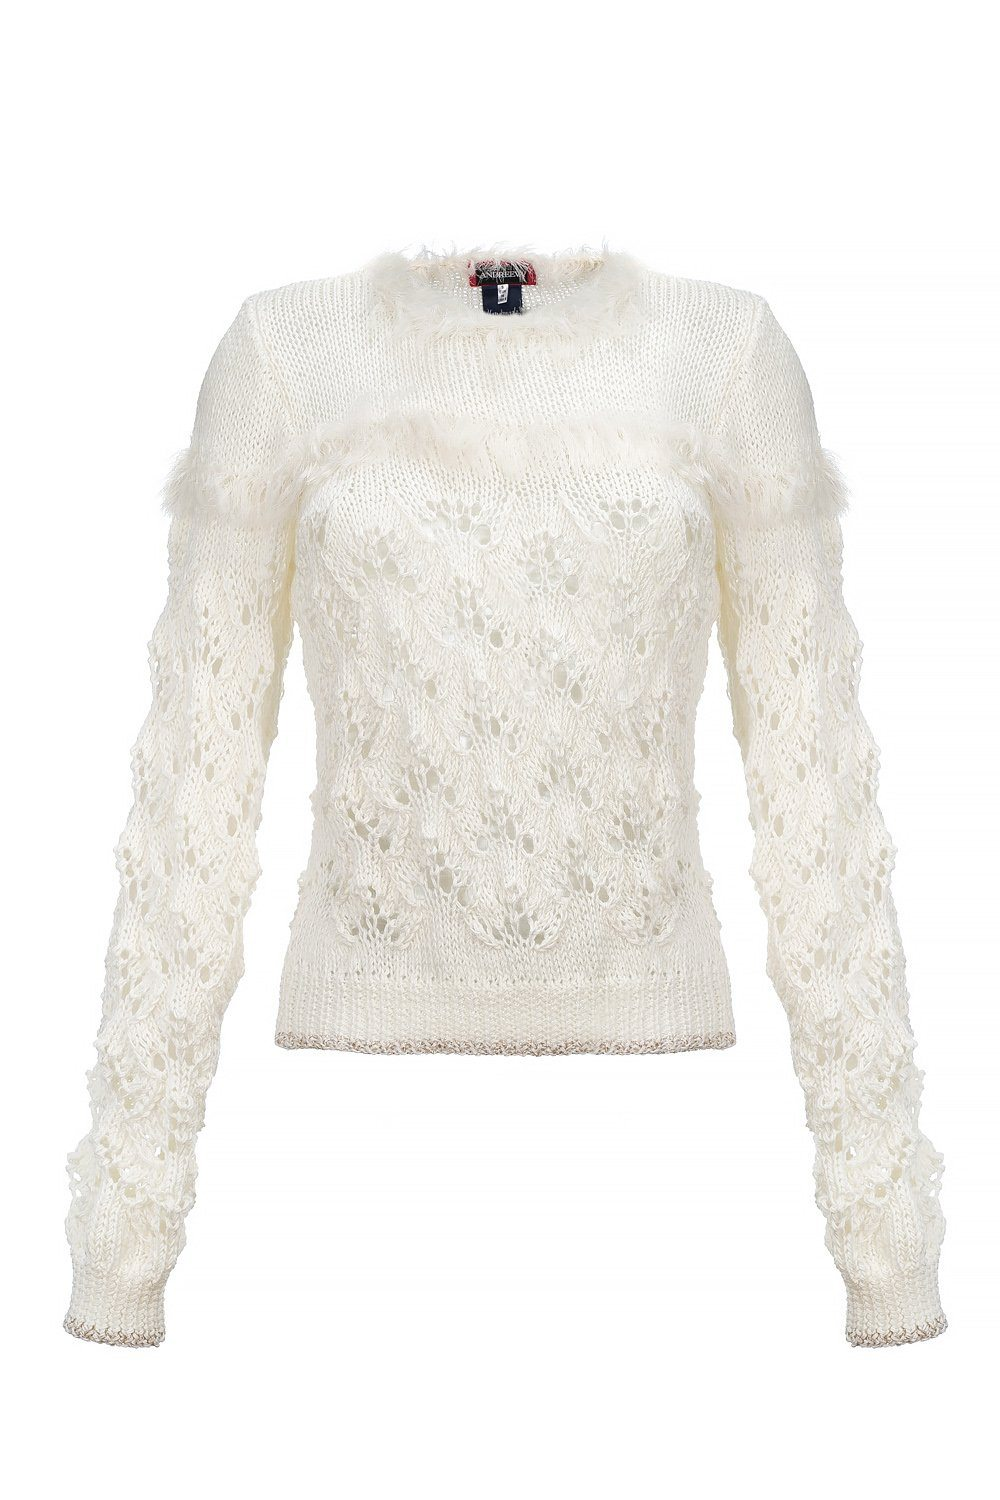 white handmade knit sweater